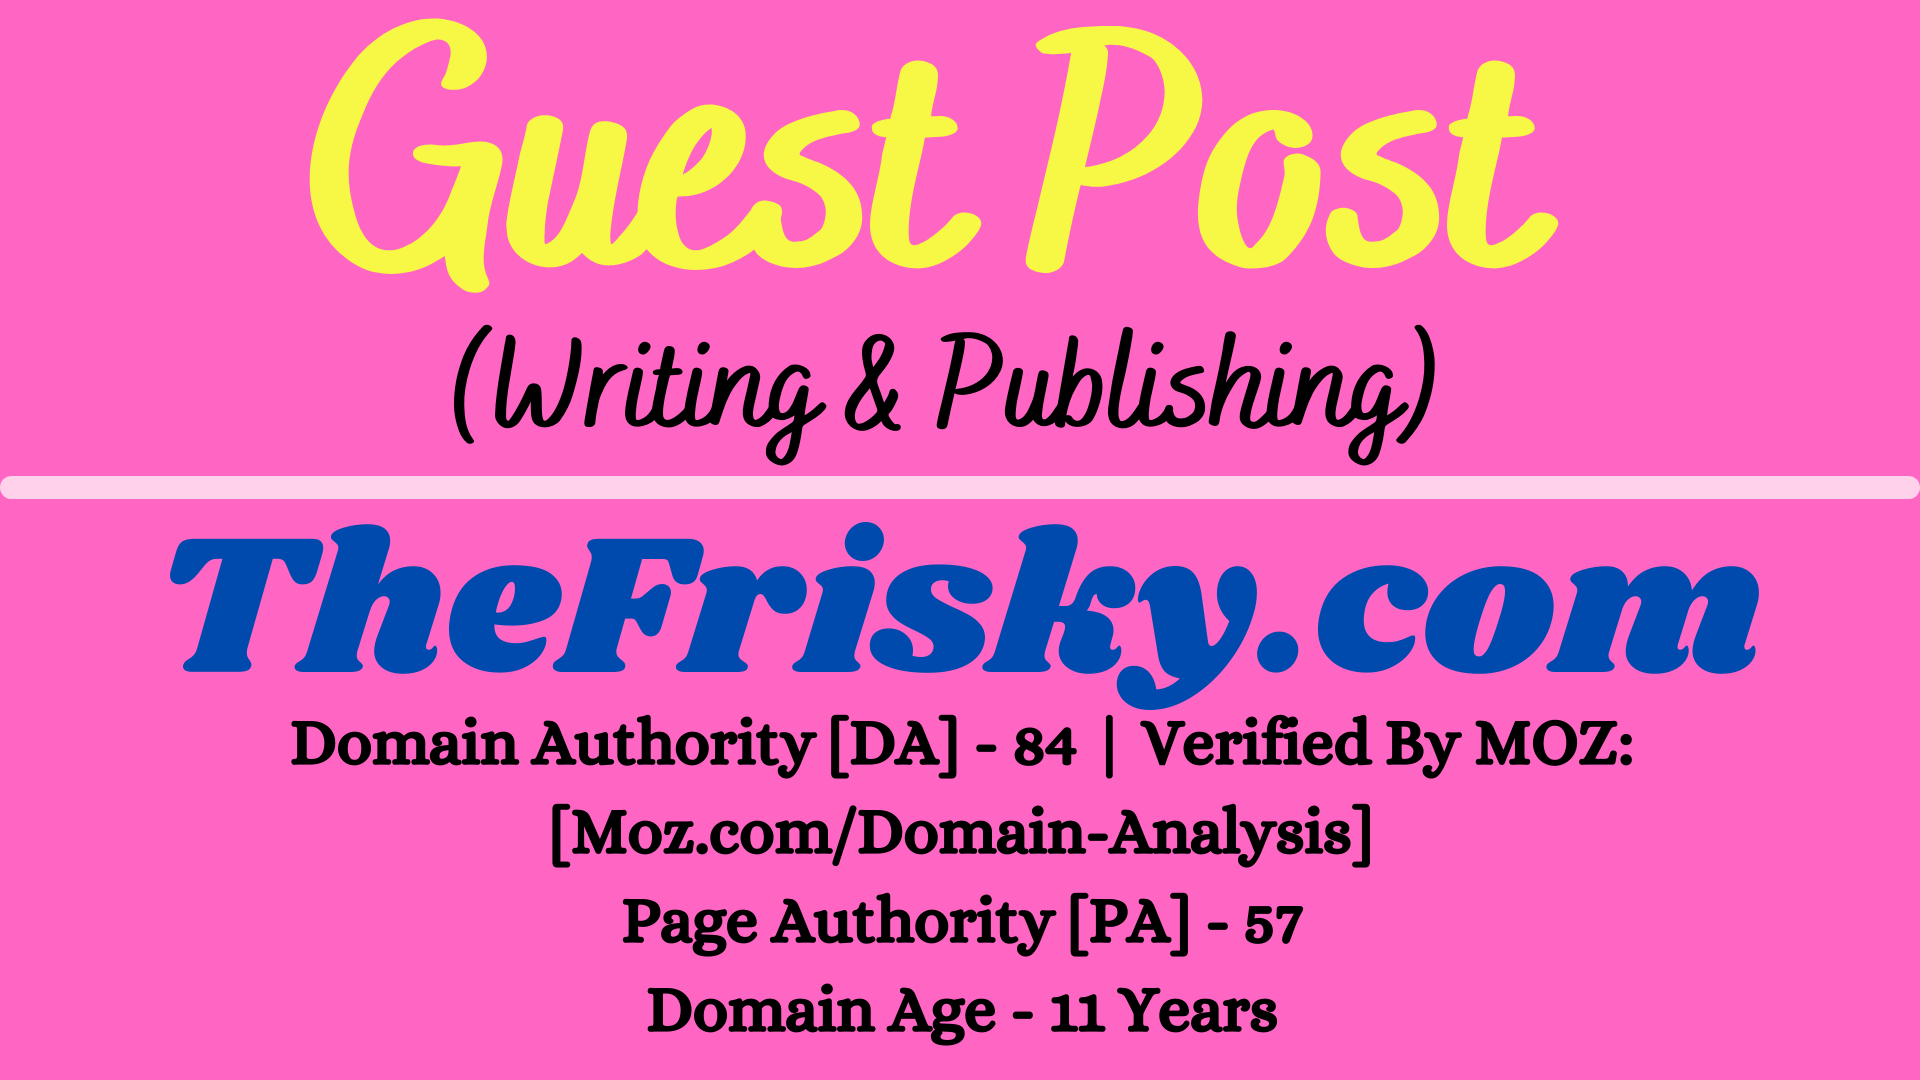 I will provide Guest Post on TheFrisky. com